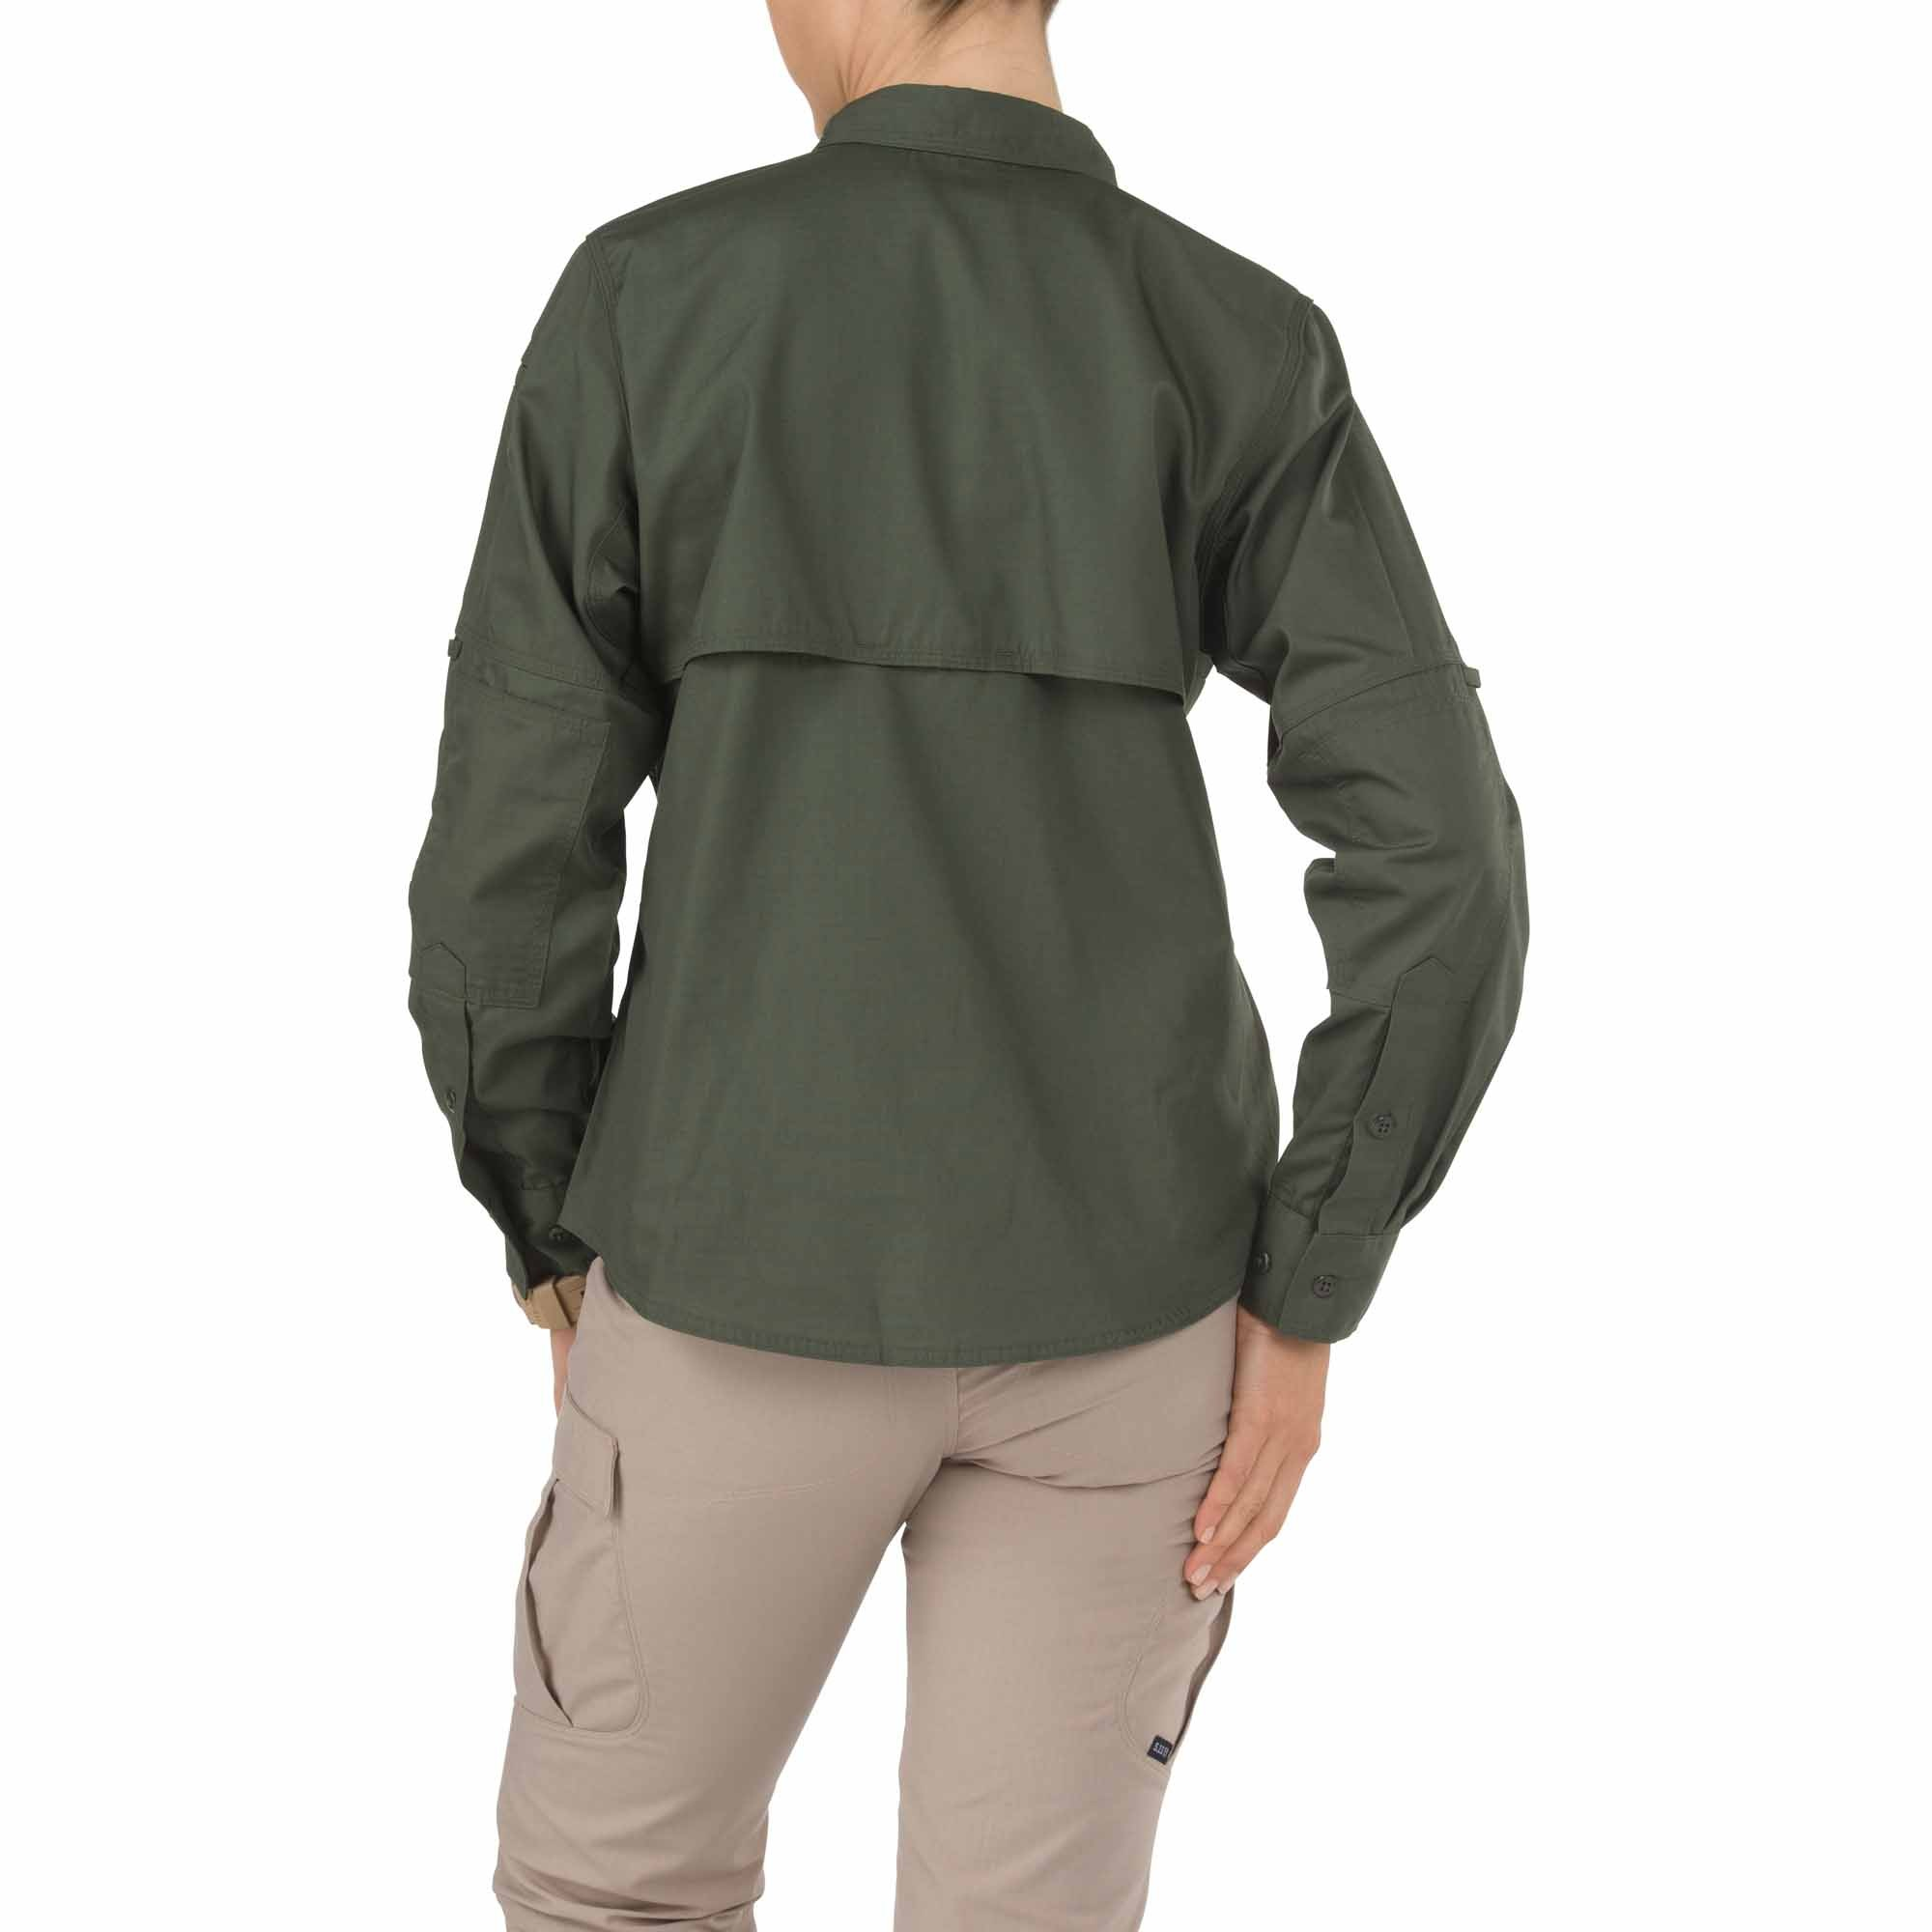 5.11 Taclite Pro Shirt - Women's Long Sleeve